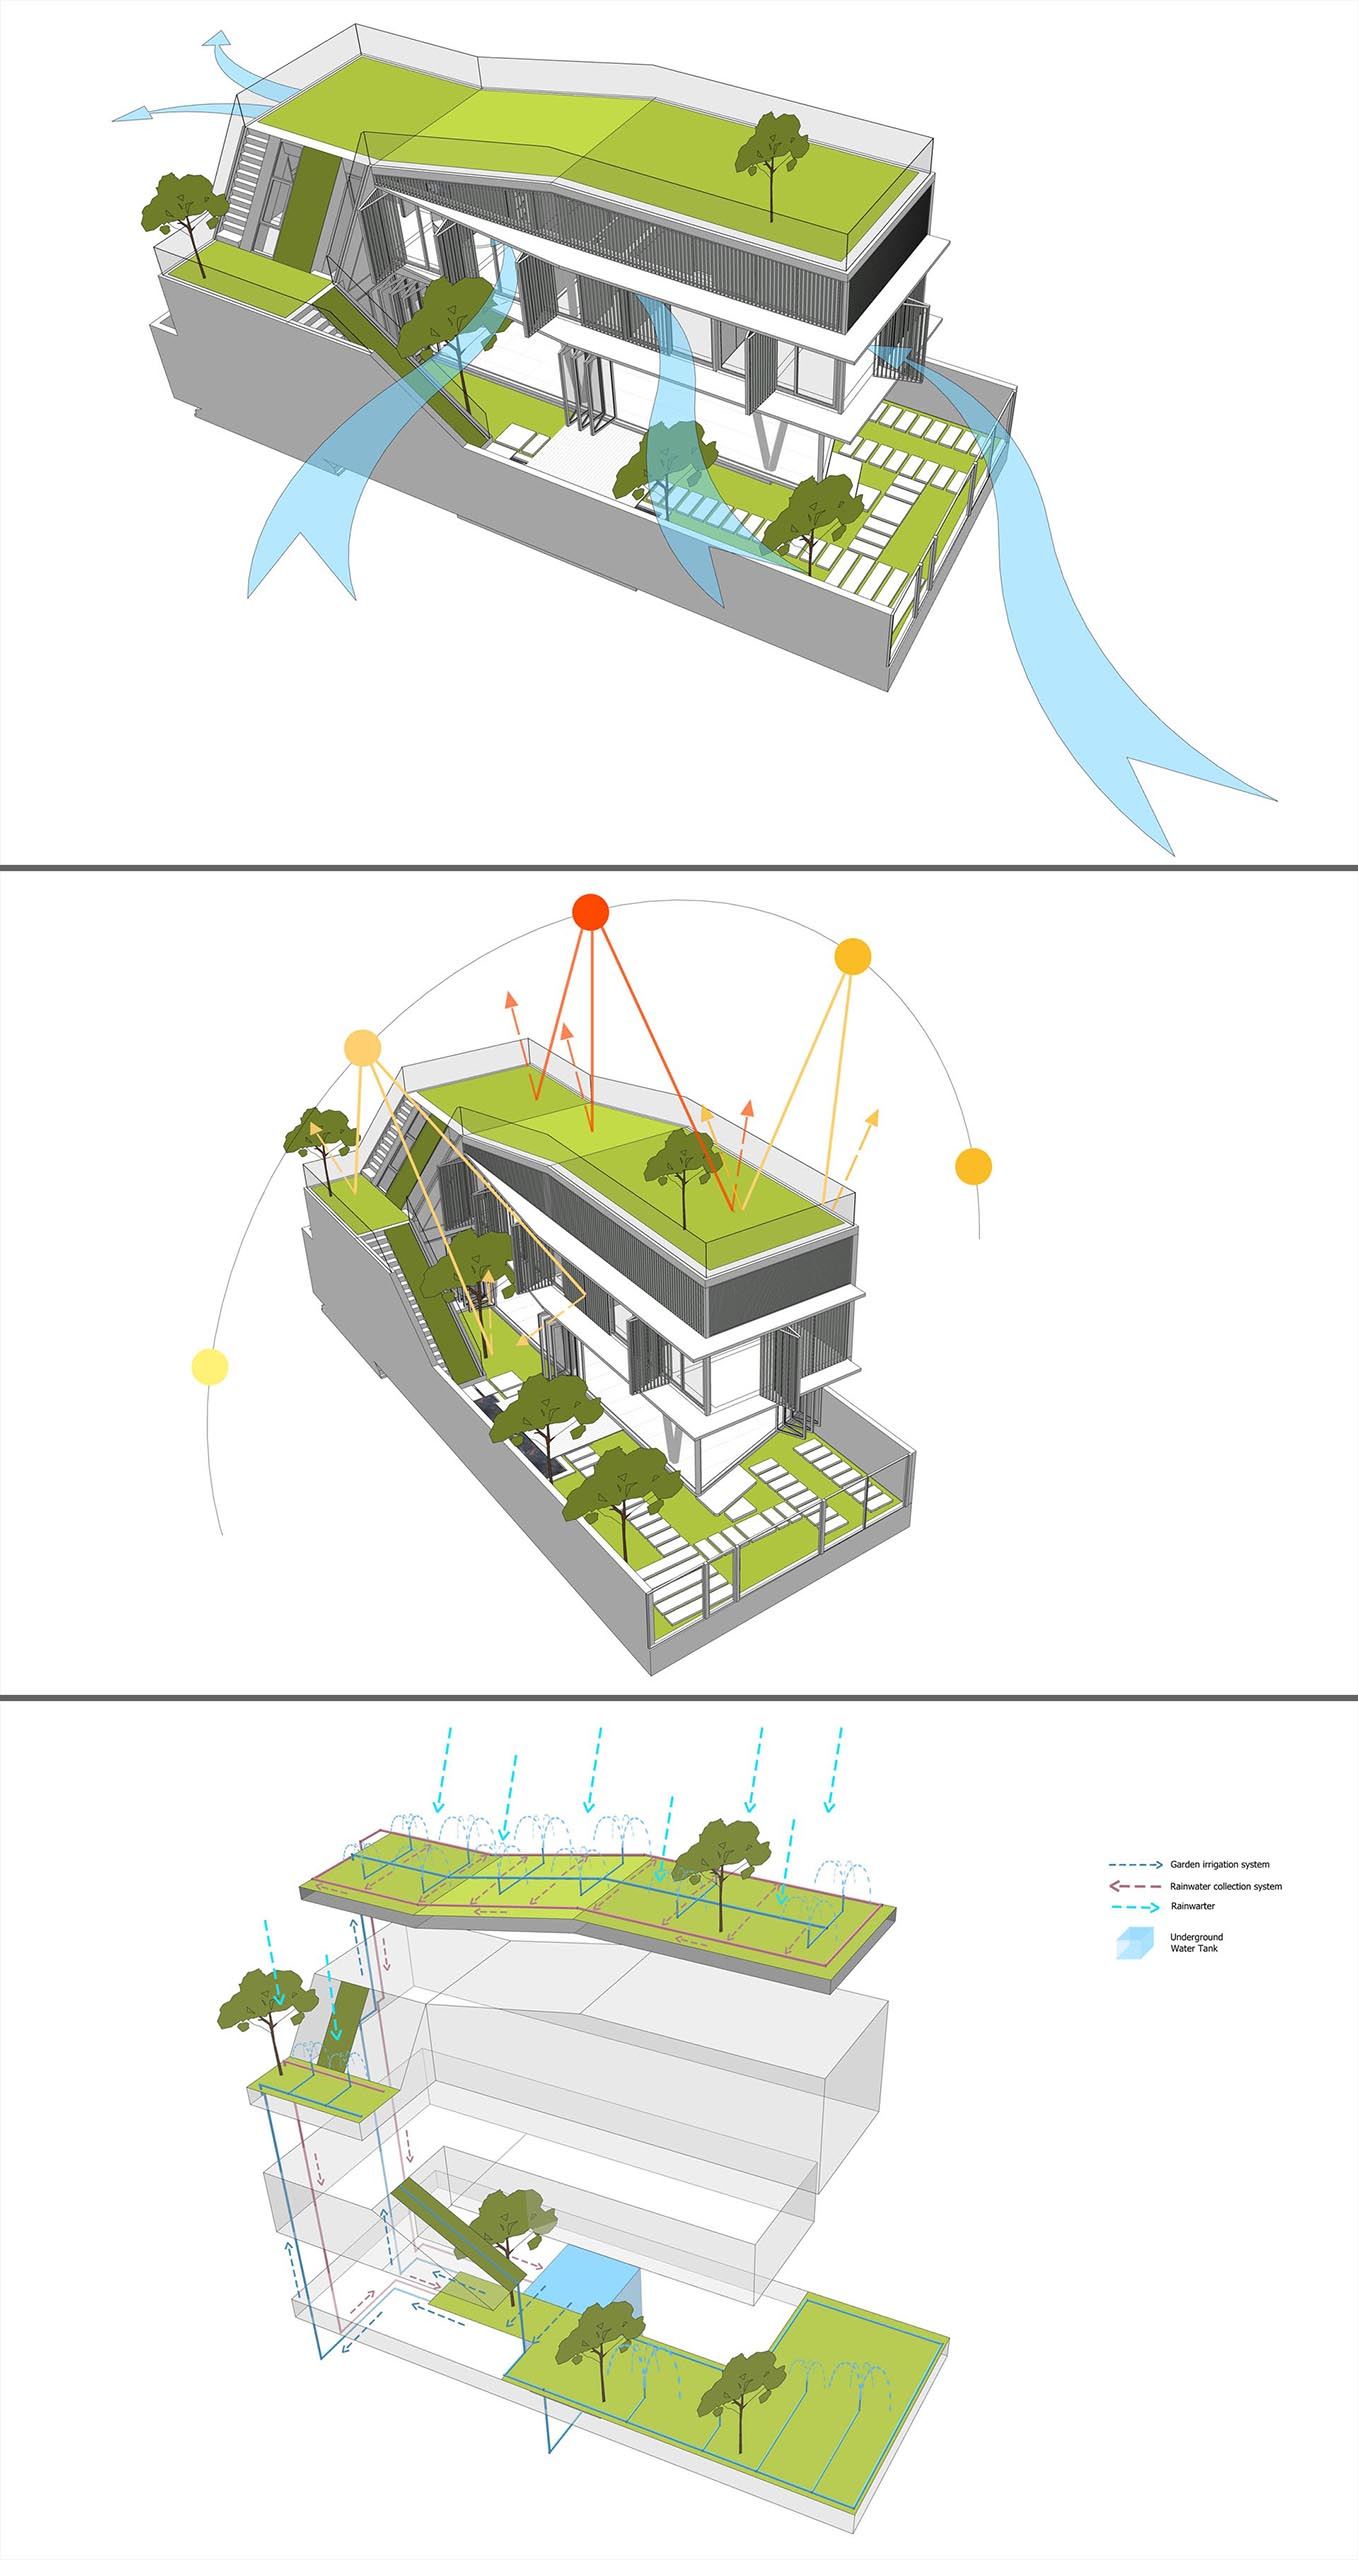 A modern multi-story house with a herb / vegetable garden on the roof.